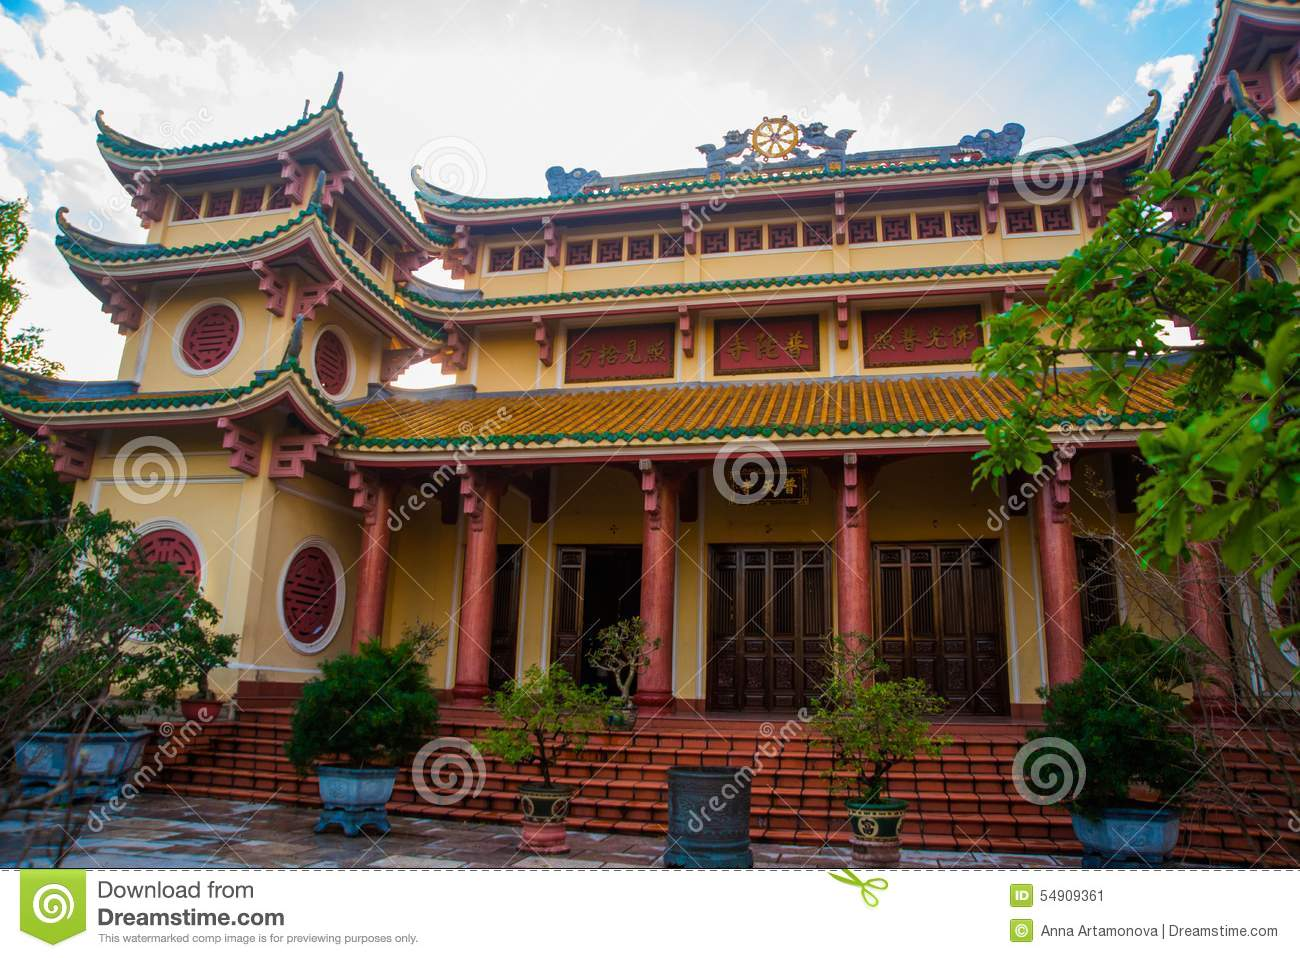 buddhist single men in grant town The 5 best places for expats to live in thailand thailand is one of the world's most popular locales for good living abroad  many expats live near the city center, and some single.